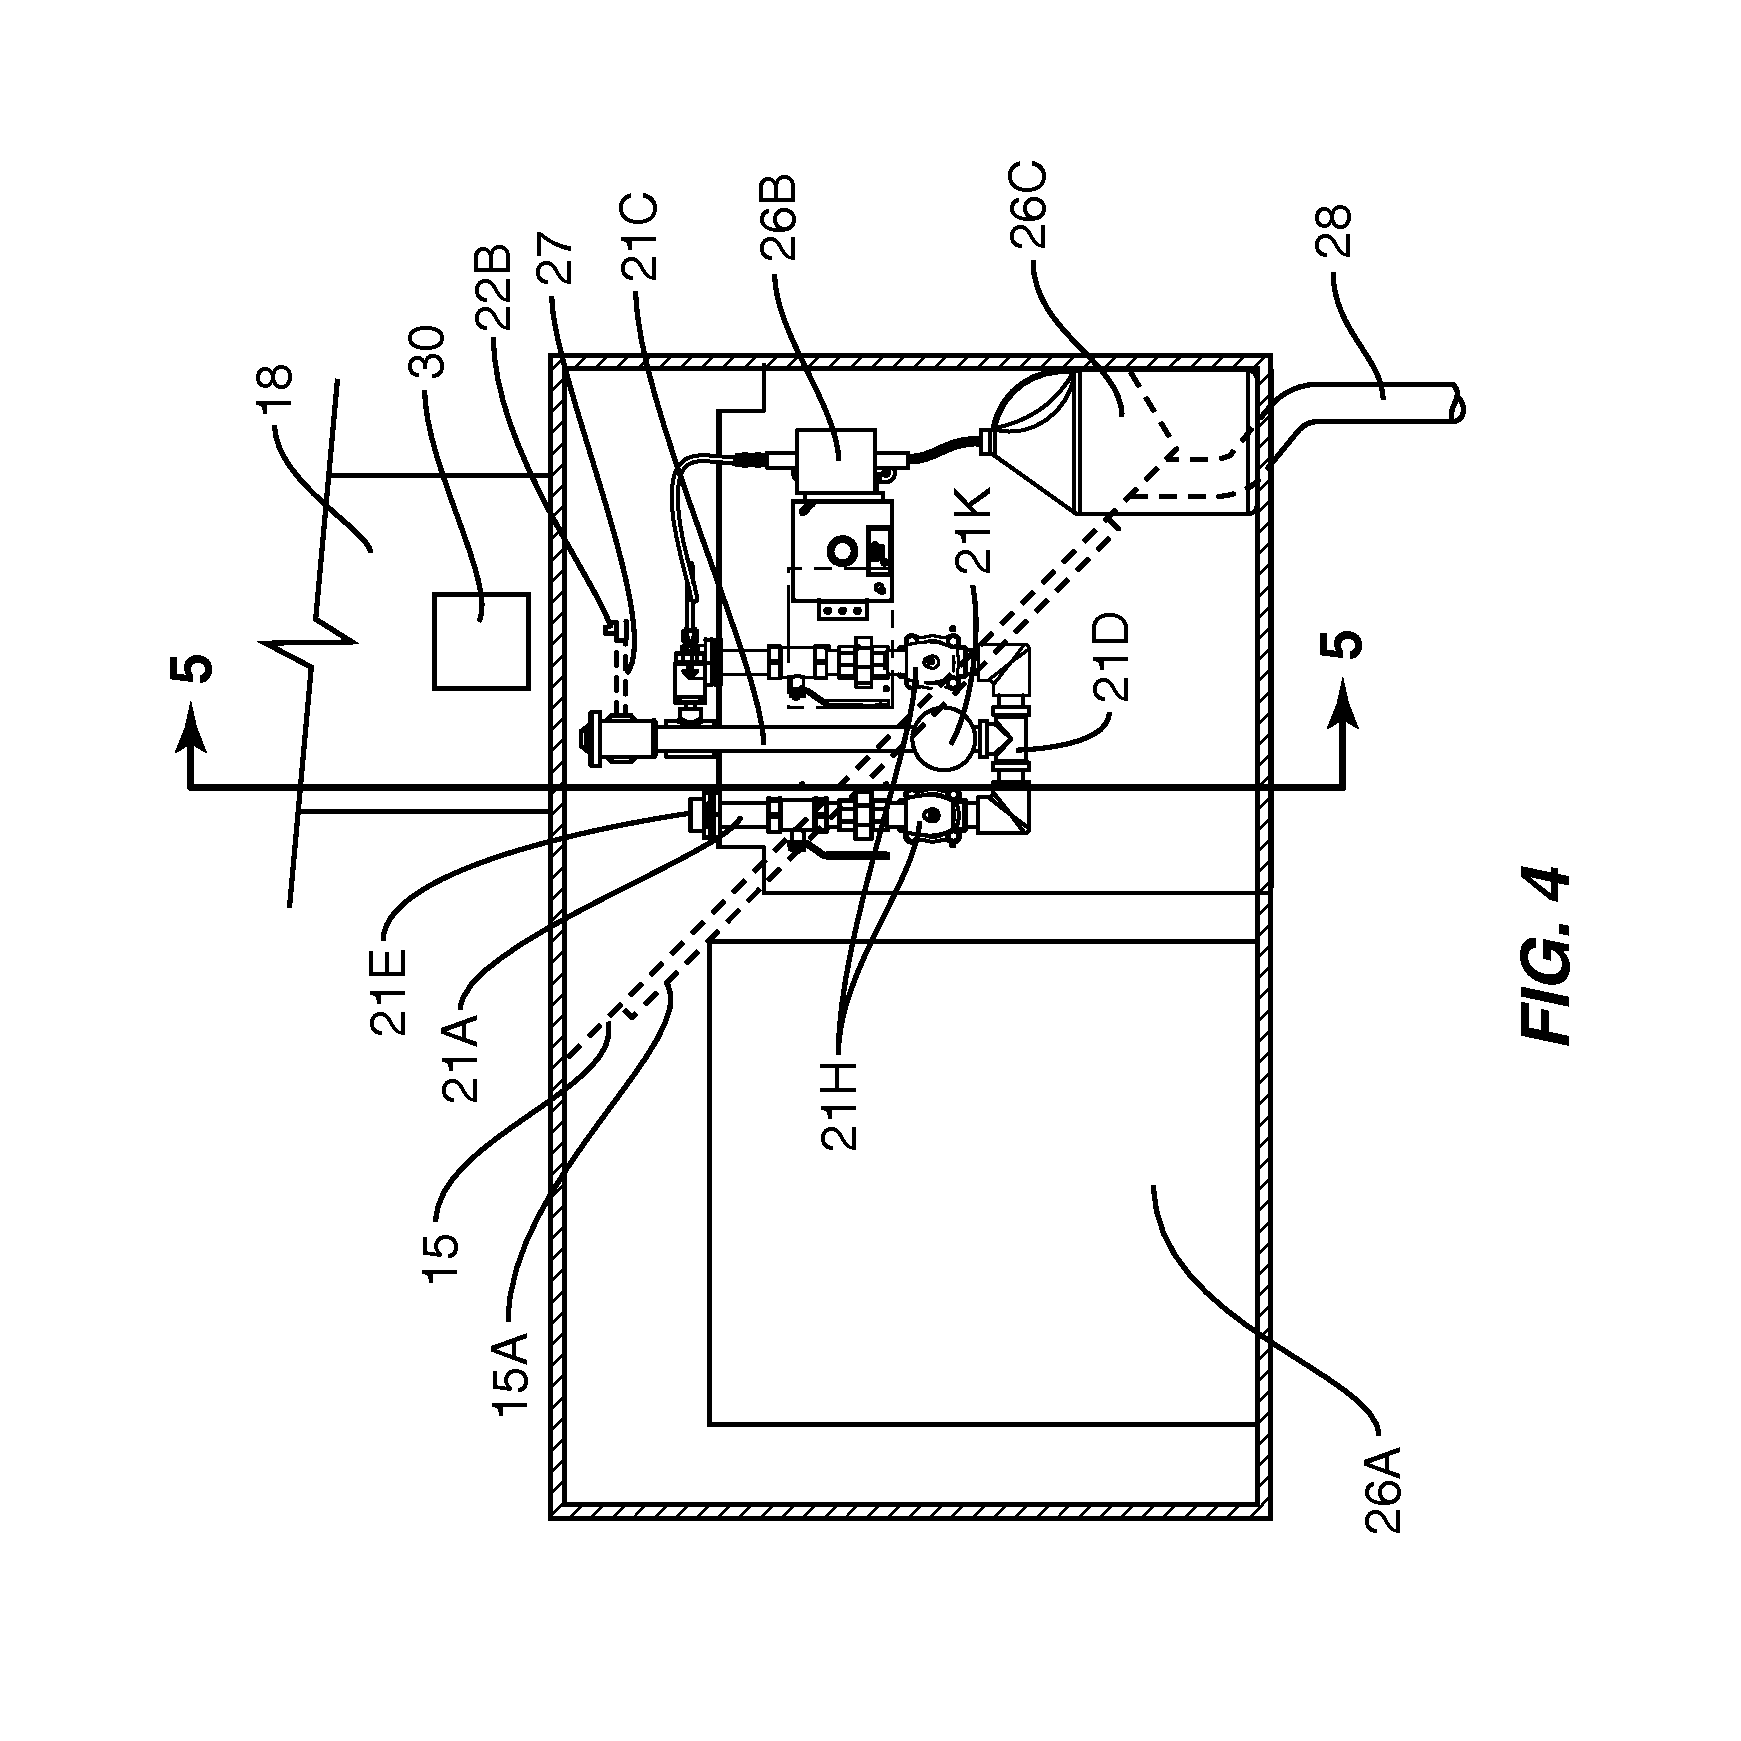 patent us20130048319 - kitchen hood assembly with fire suppression control system